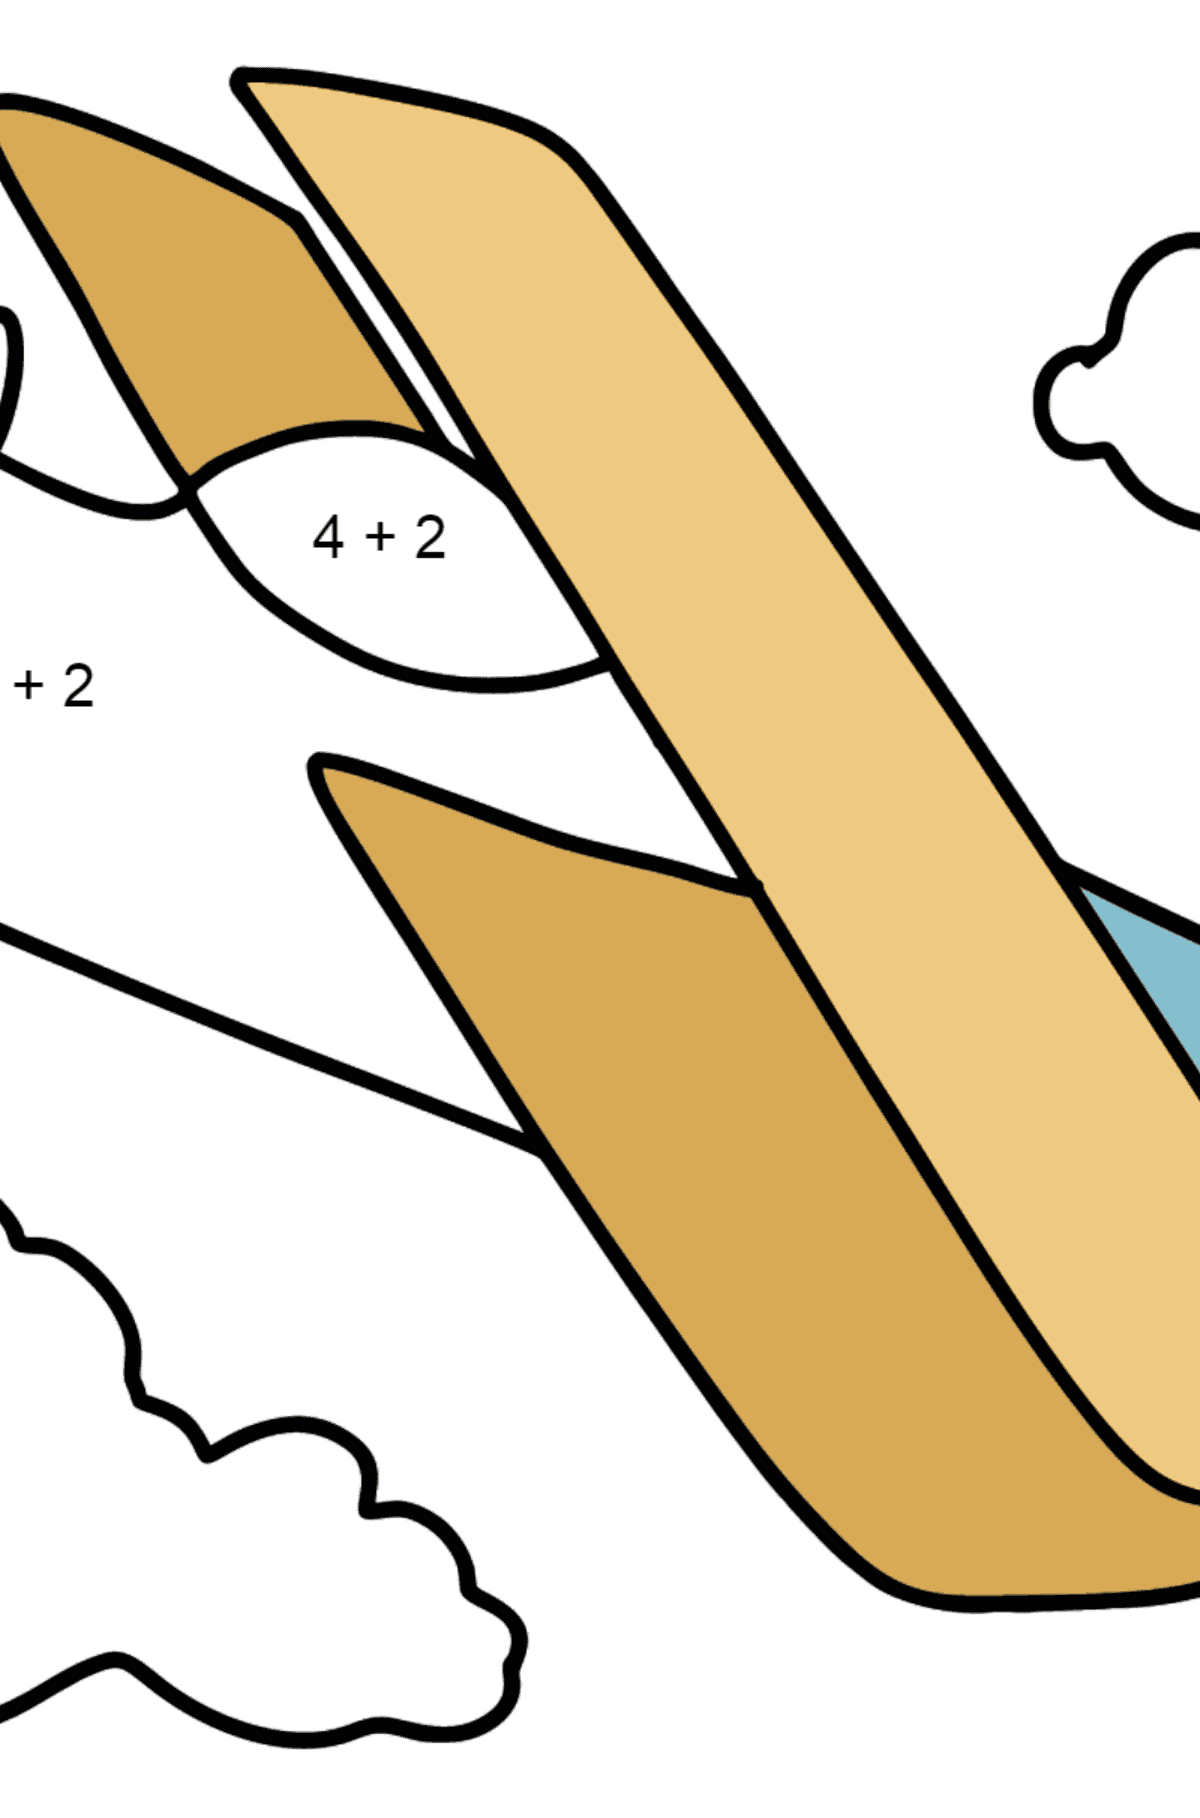 Simple Airplane coloring page - Math Coloring - Addition for Kids